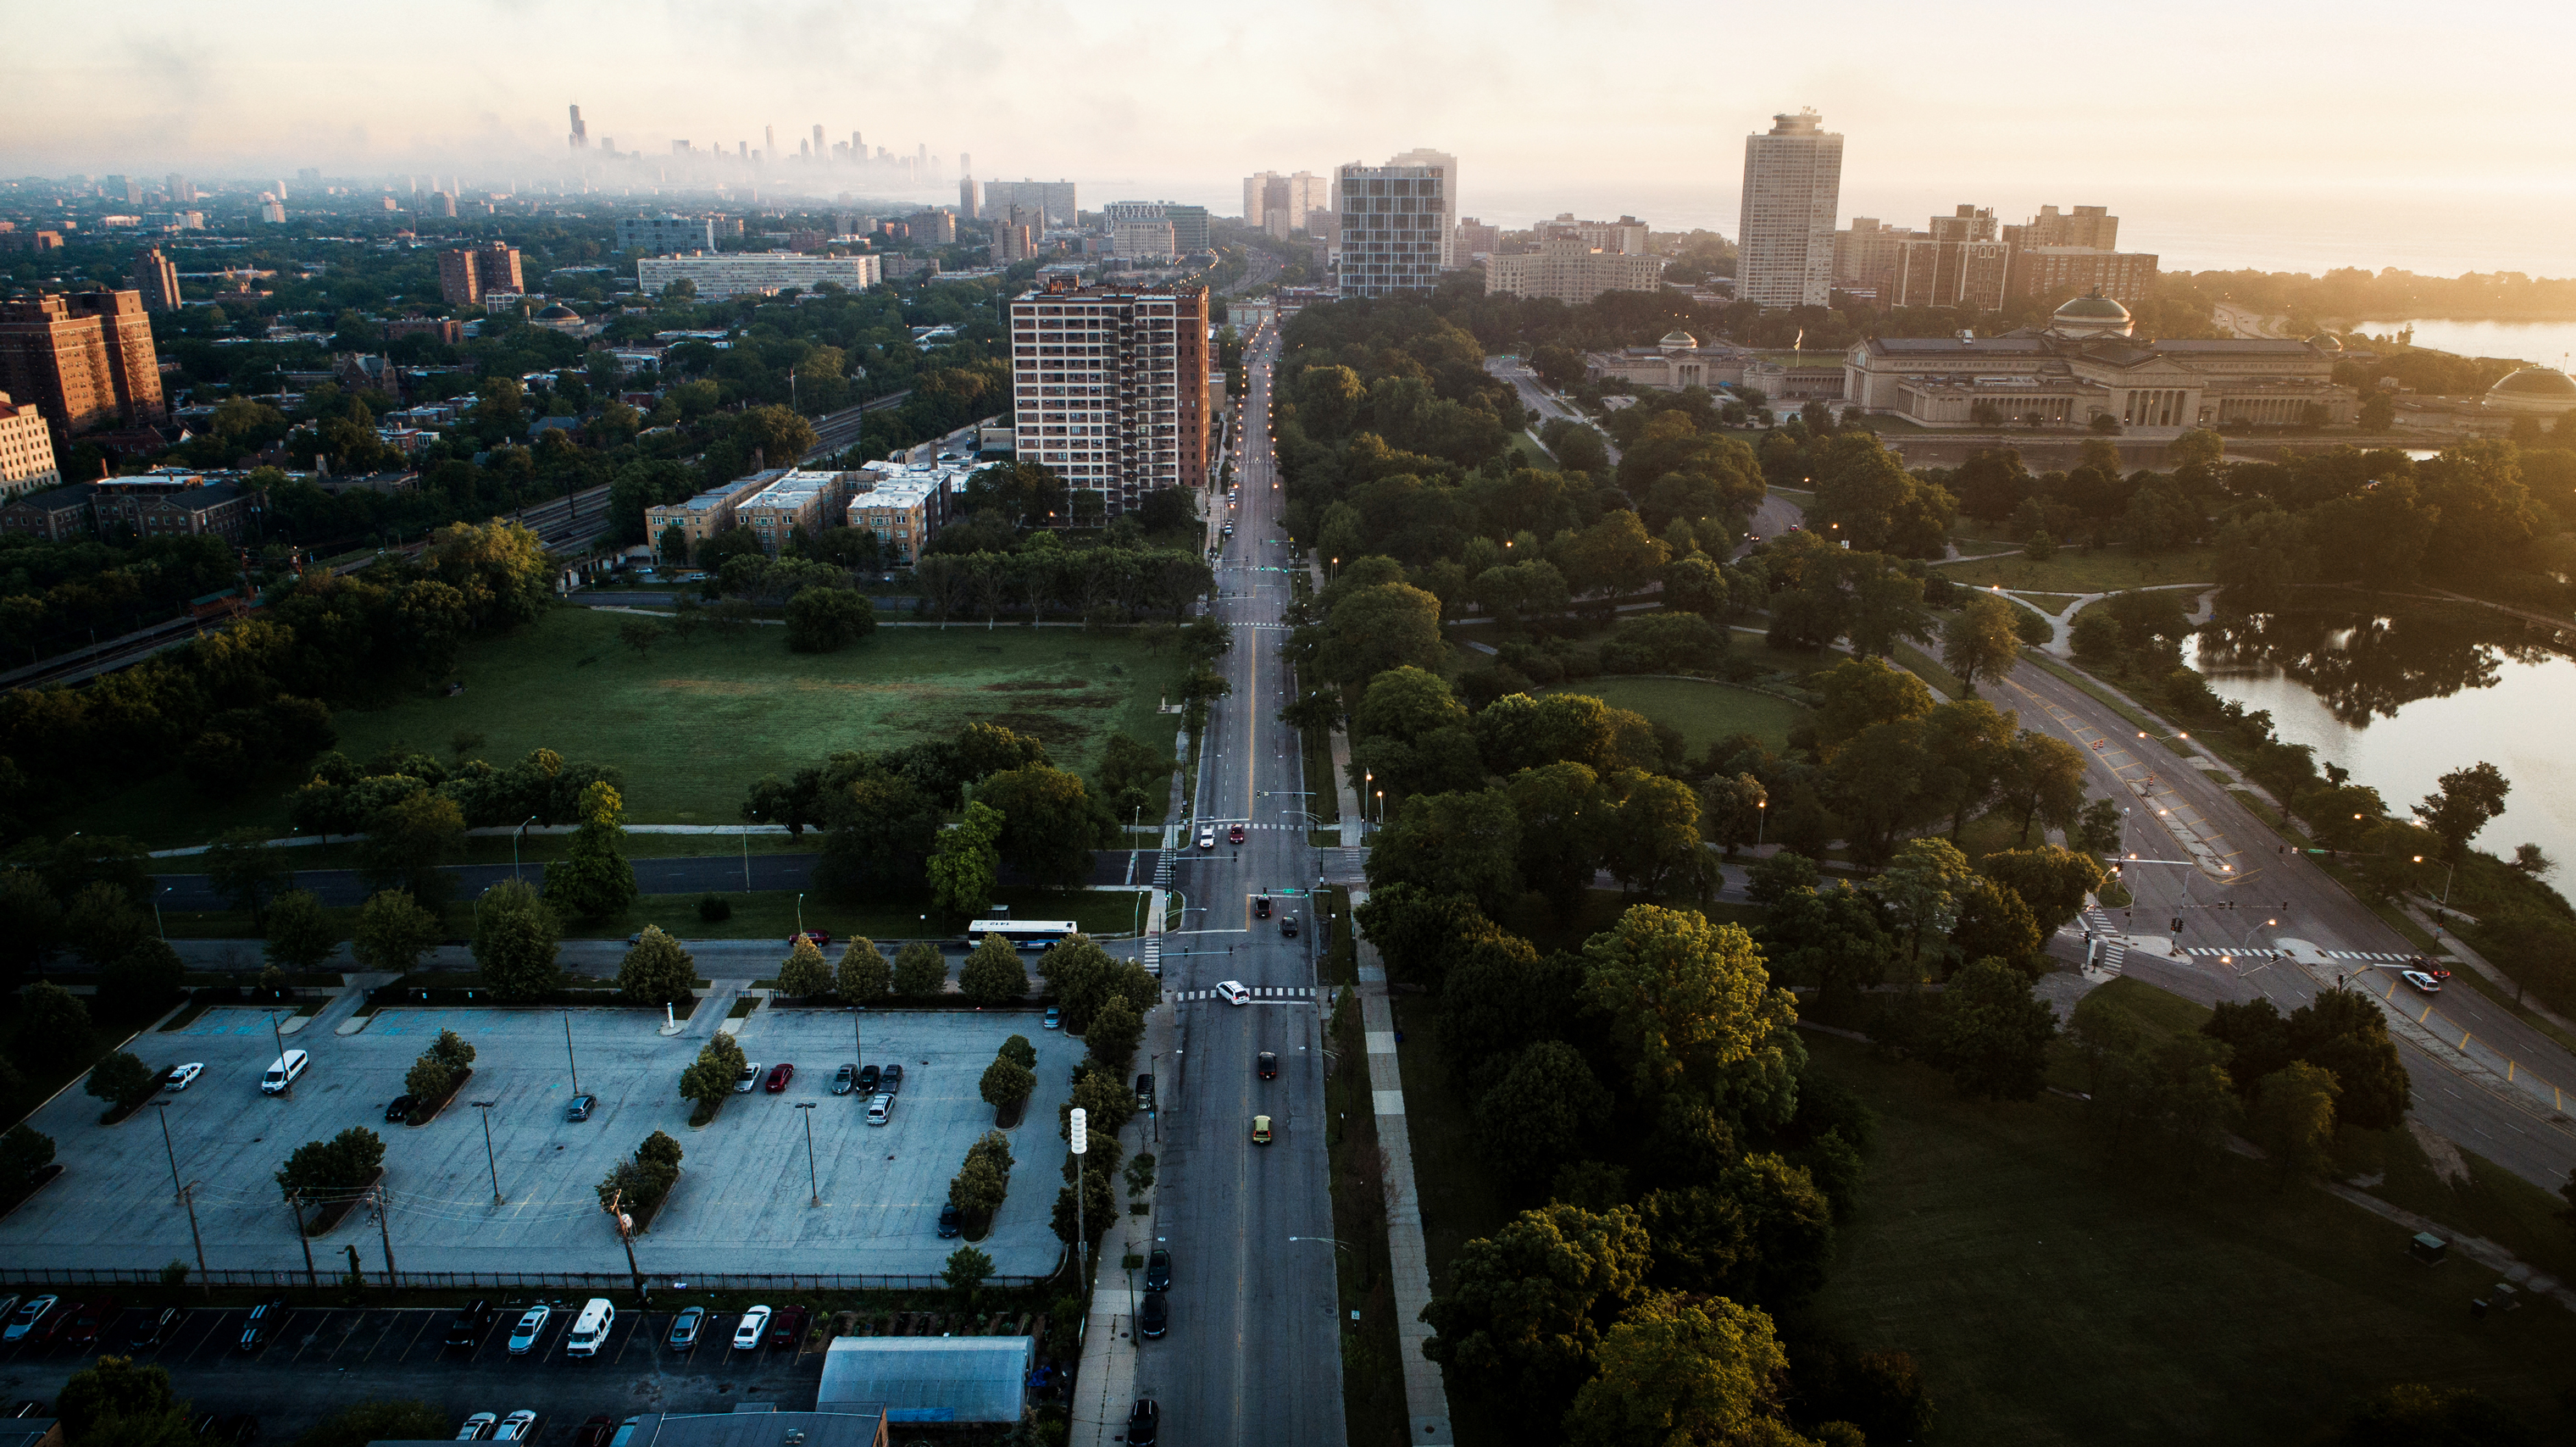 The sun rises over apartments in Woodlawn, at left, and Hyde Park, at top, neighborhoods adjacent to Jackson Park. The Obama Presidential Center is currently planned to be built within the green spaces at center and bottom right.